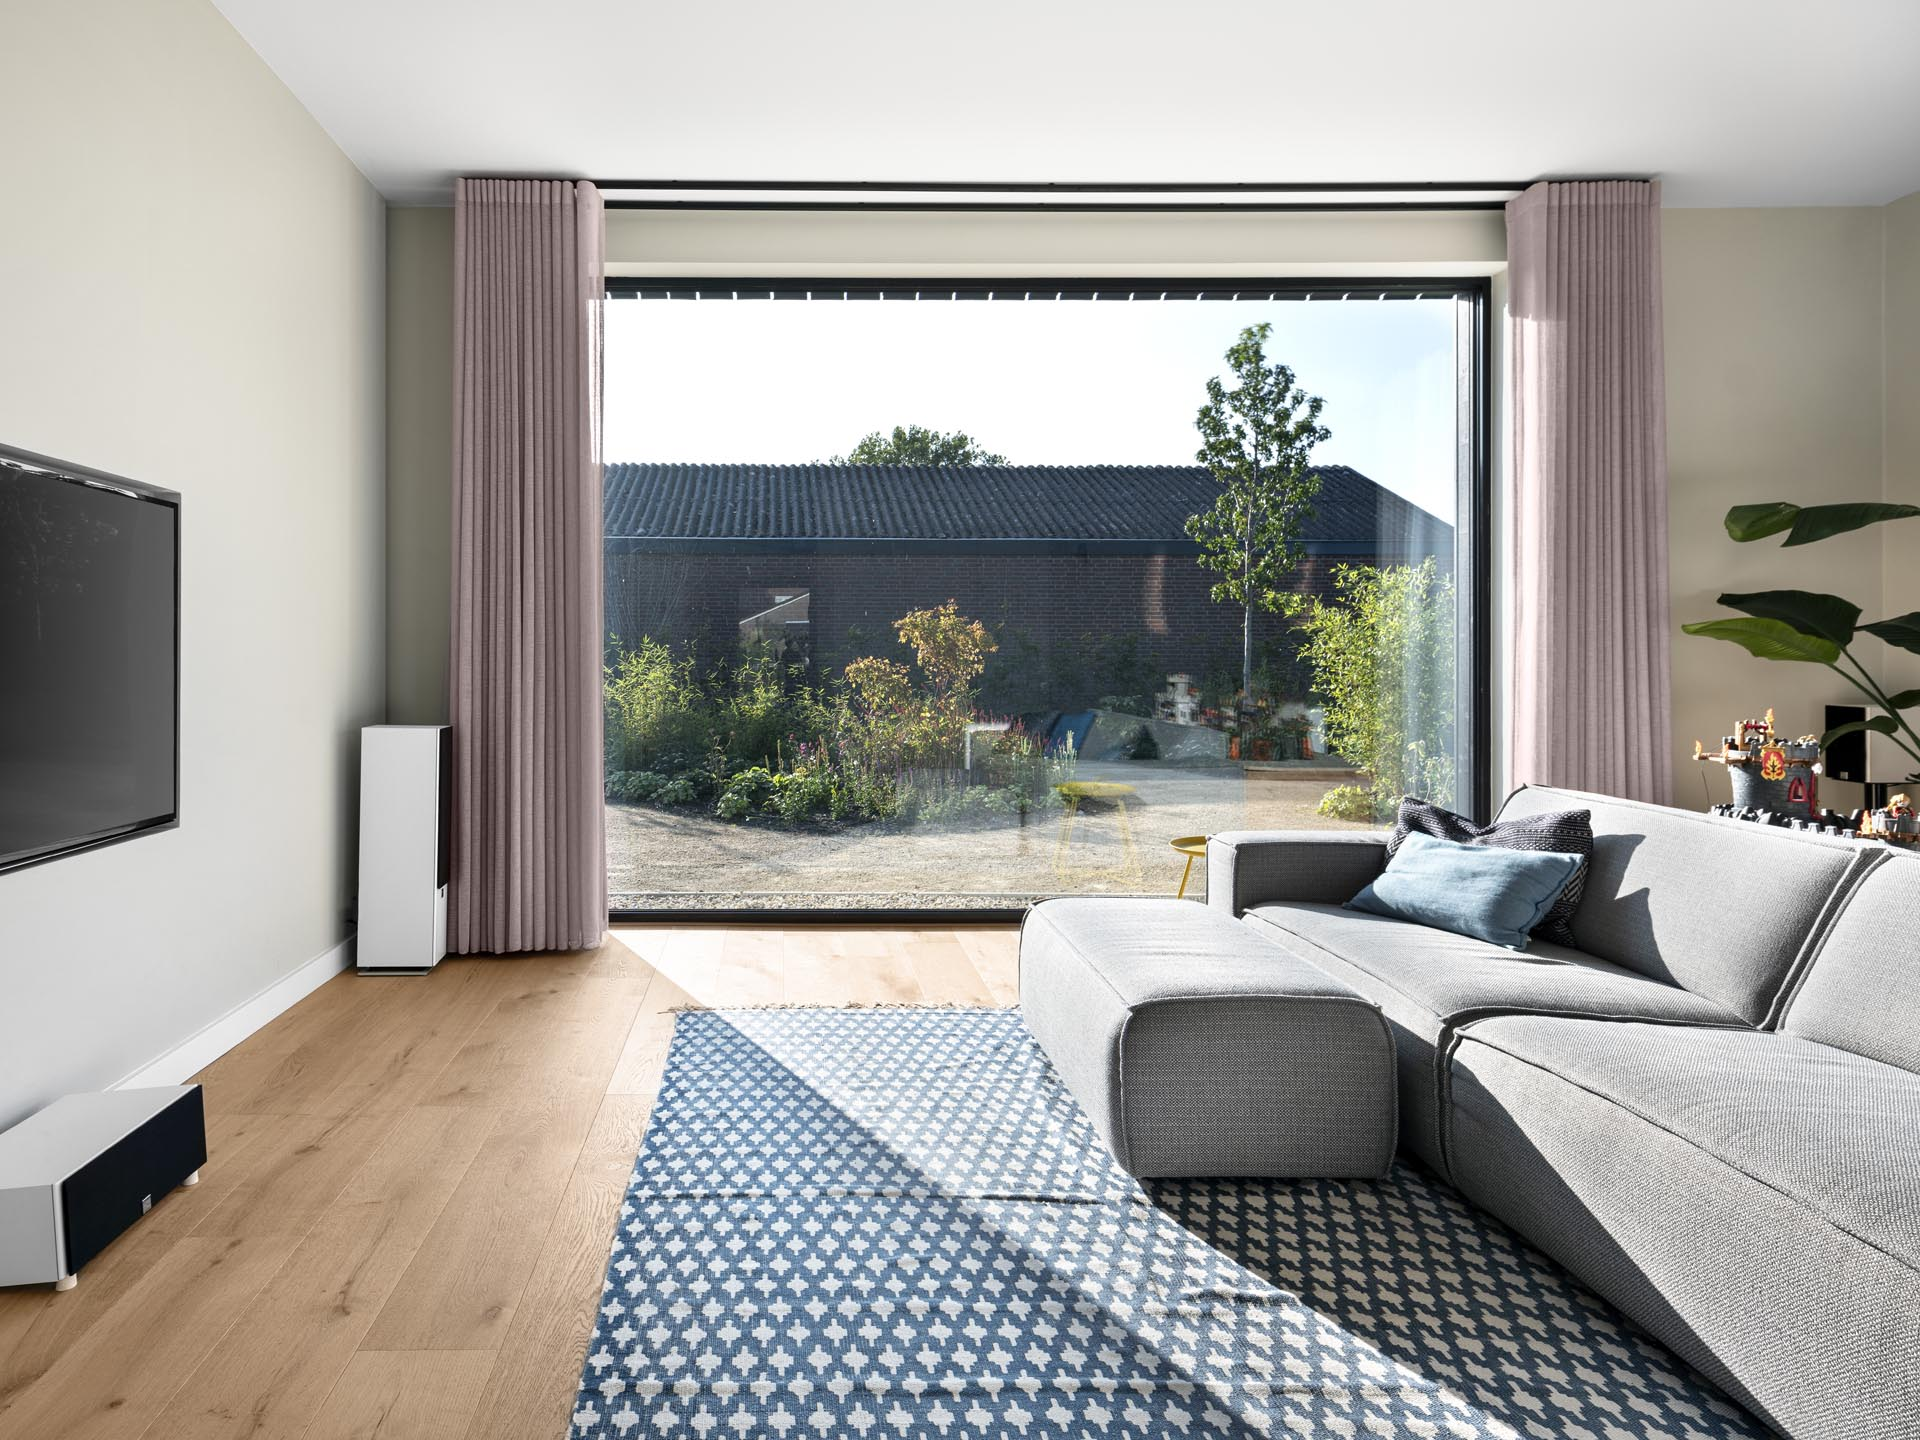 A modern living room with a large window that provides ample natural light and views of the garden.